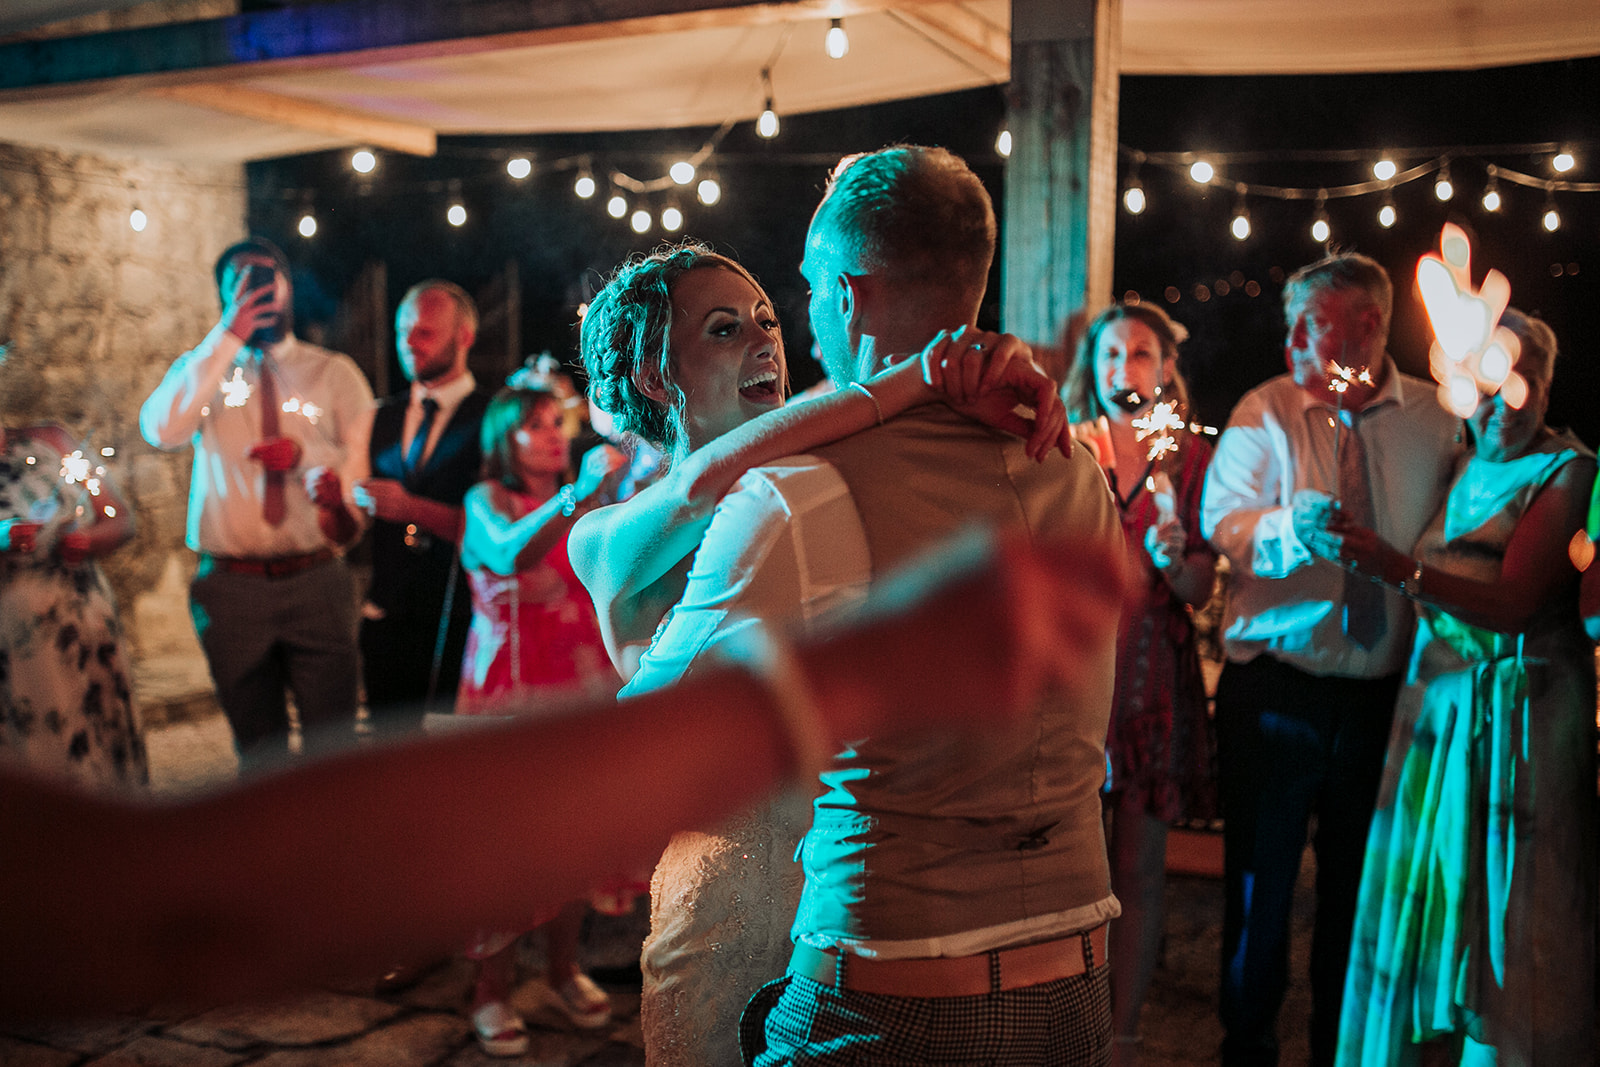 A cute photo of the happy wedding couple dancing. The bride is laughing. The guests are laughing as well and holding sparklers. One guest in the background is filming with his phone. The atmosphere looks great.